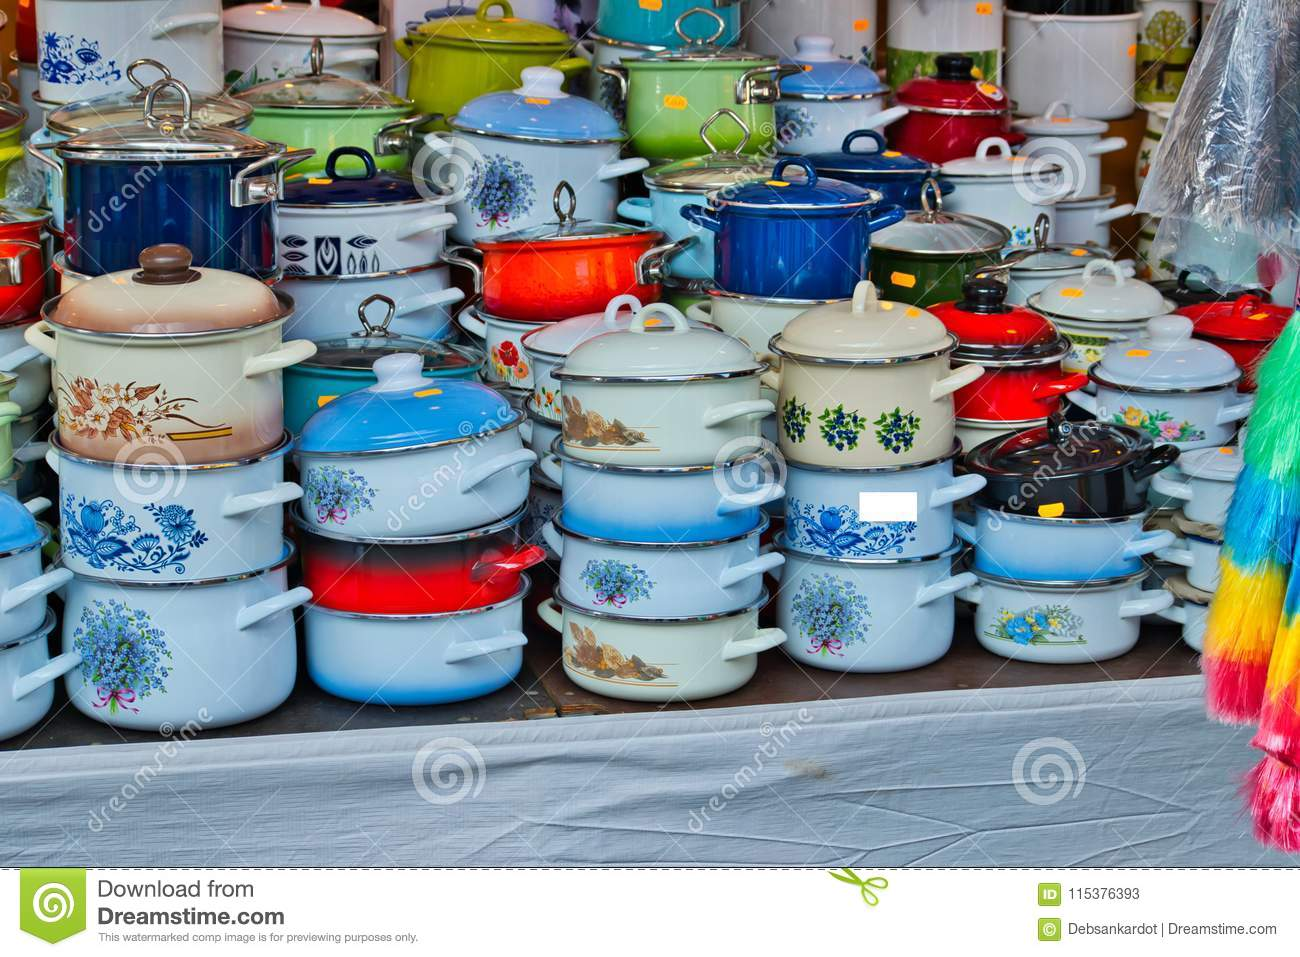 Cooking pot container for sale.